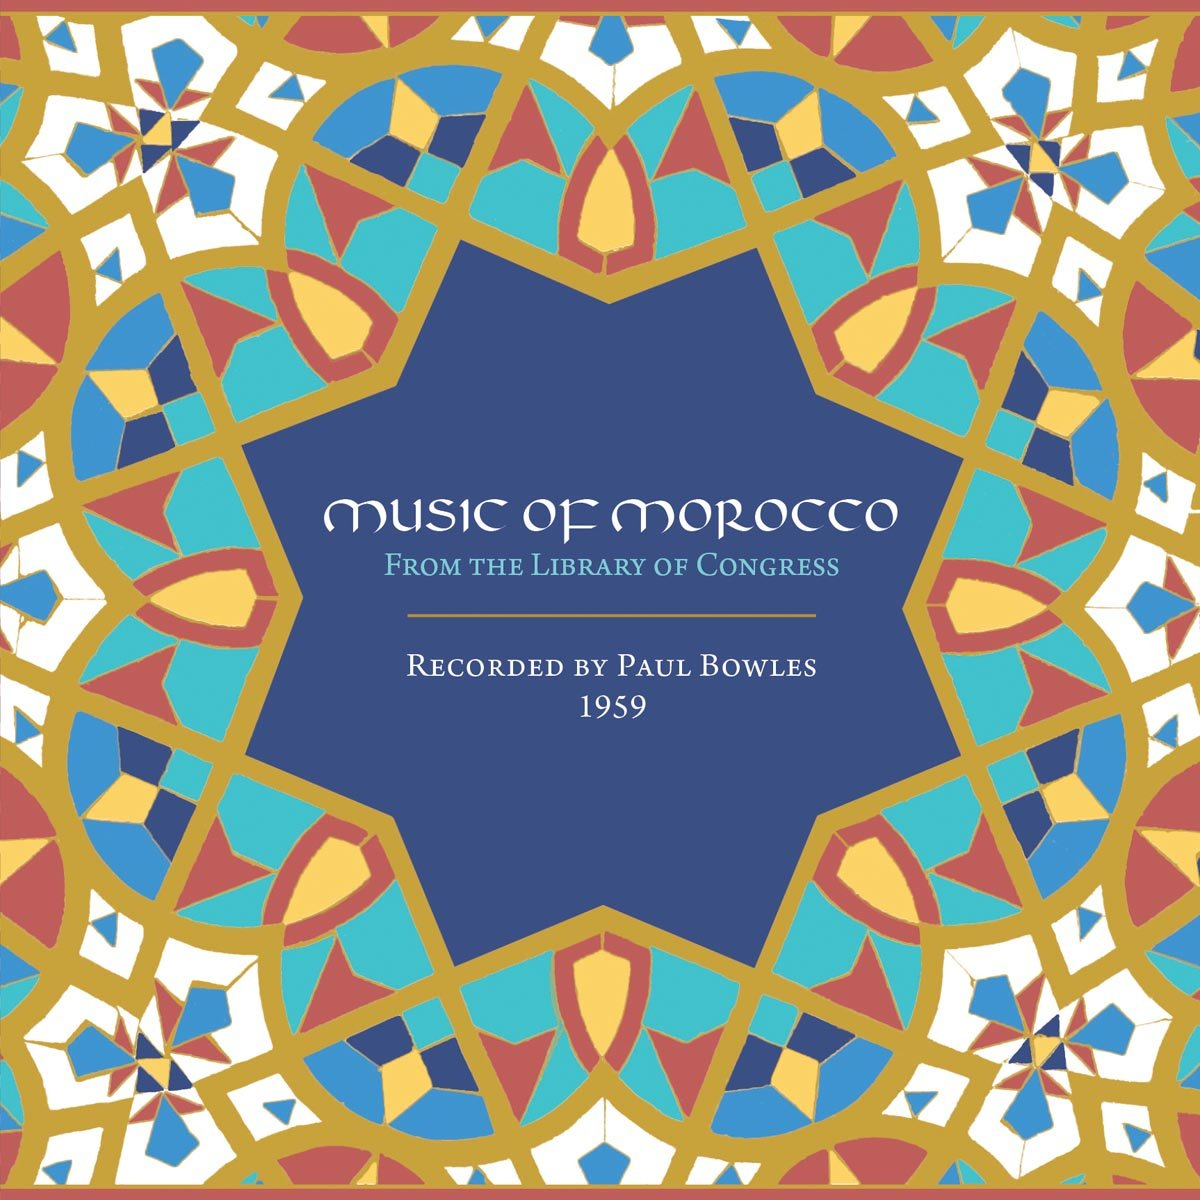 Music of Morocco: Recorded By Paul Bowles 1959 by Unknown